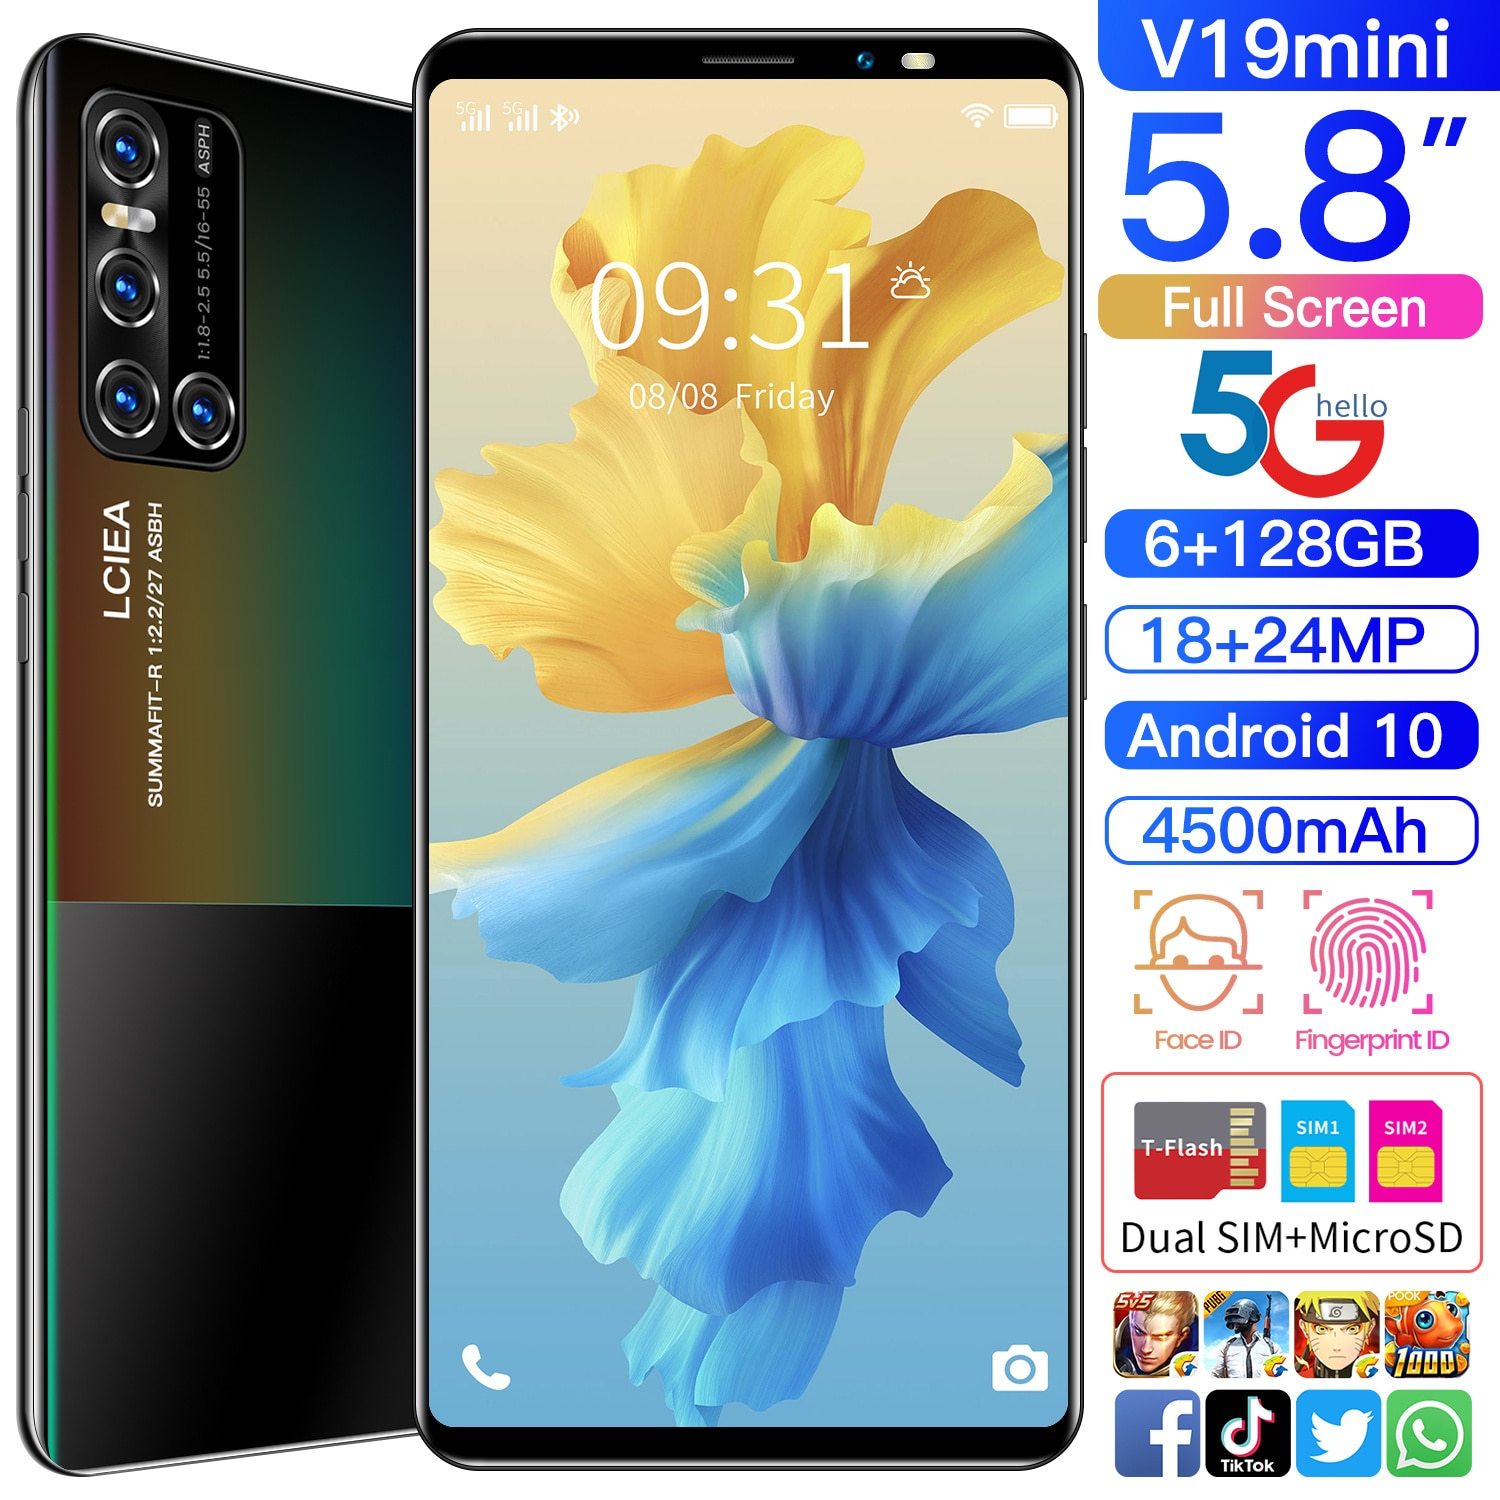 V19 mini 5.8 Inch Global Version  18+24MP Andriod Sm Artphones 6GB RAM 128GB ROM 10 Core MTK6889 Dua